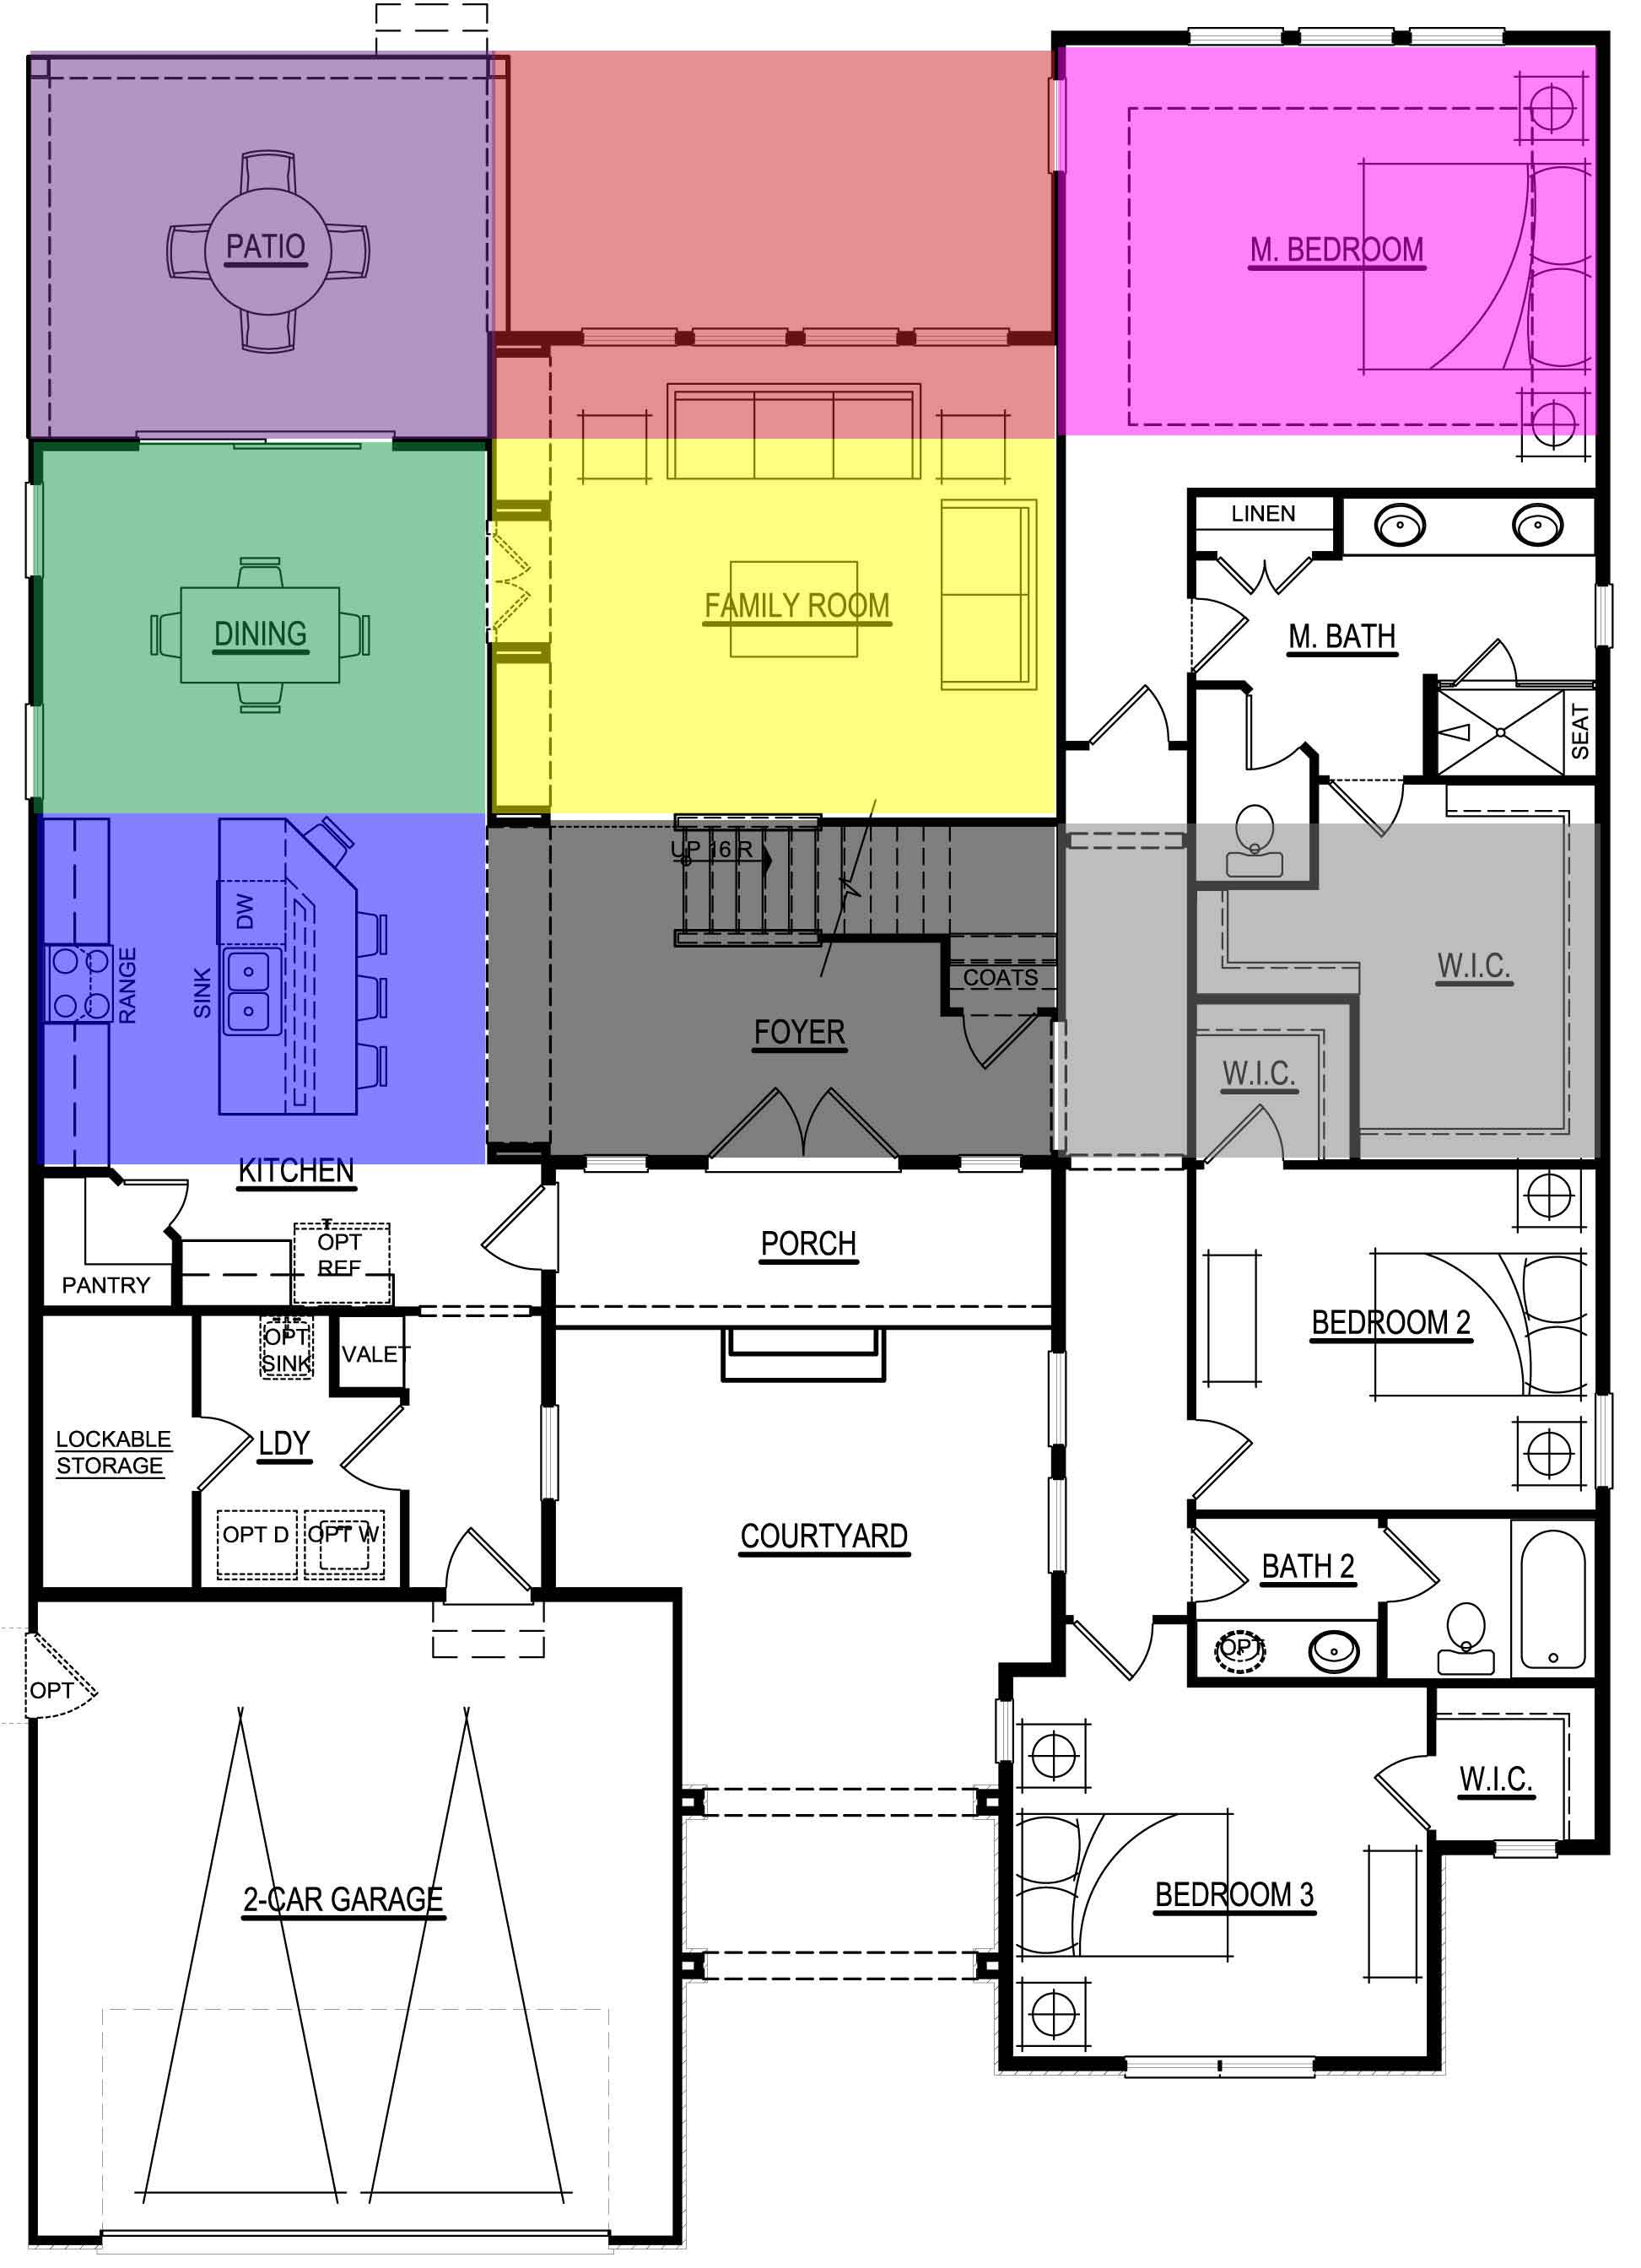 Feng Shui Example of Bad Layout 1st Floor bagua overlay bad